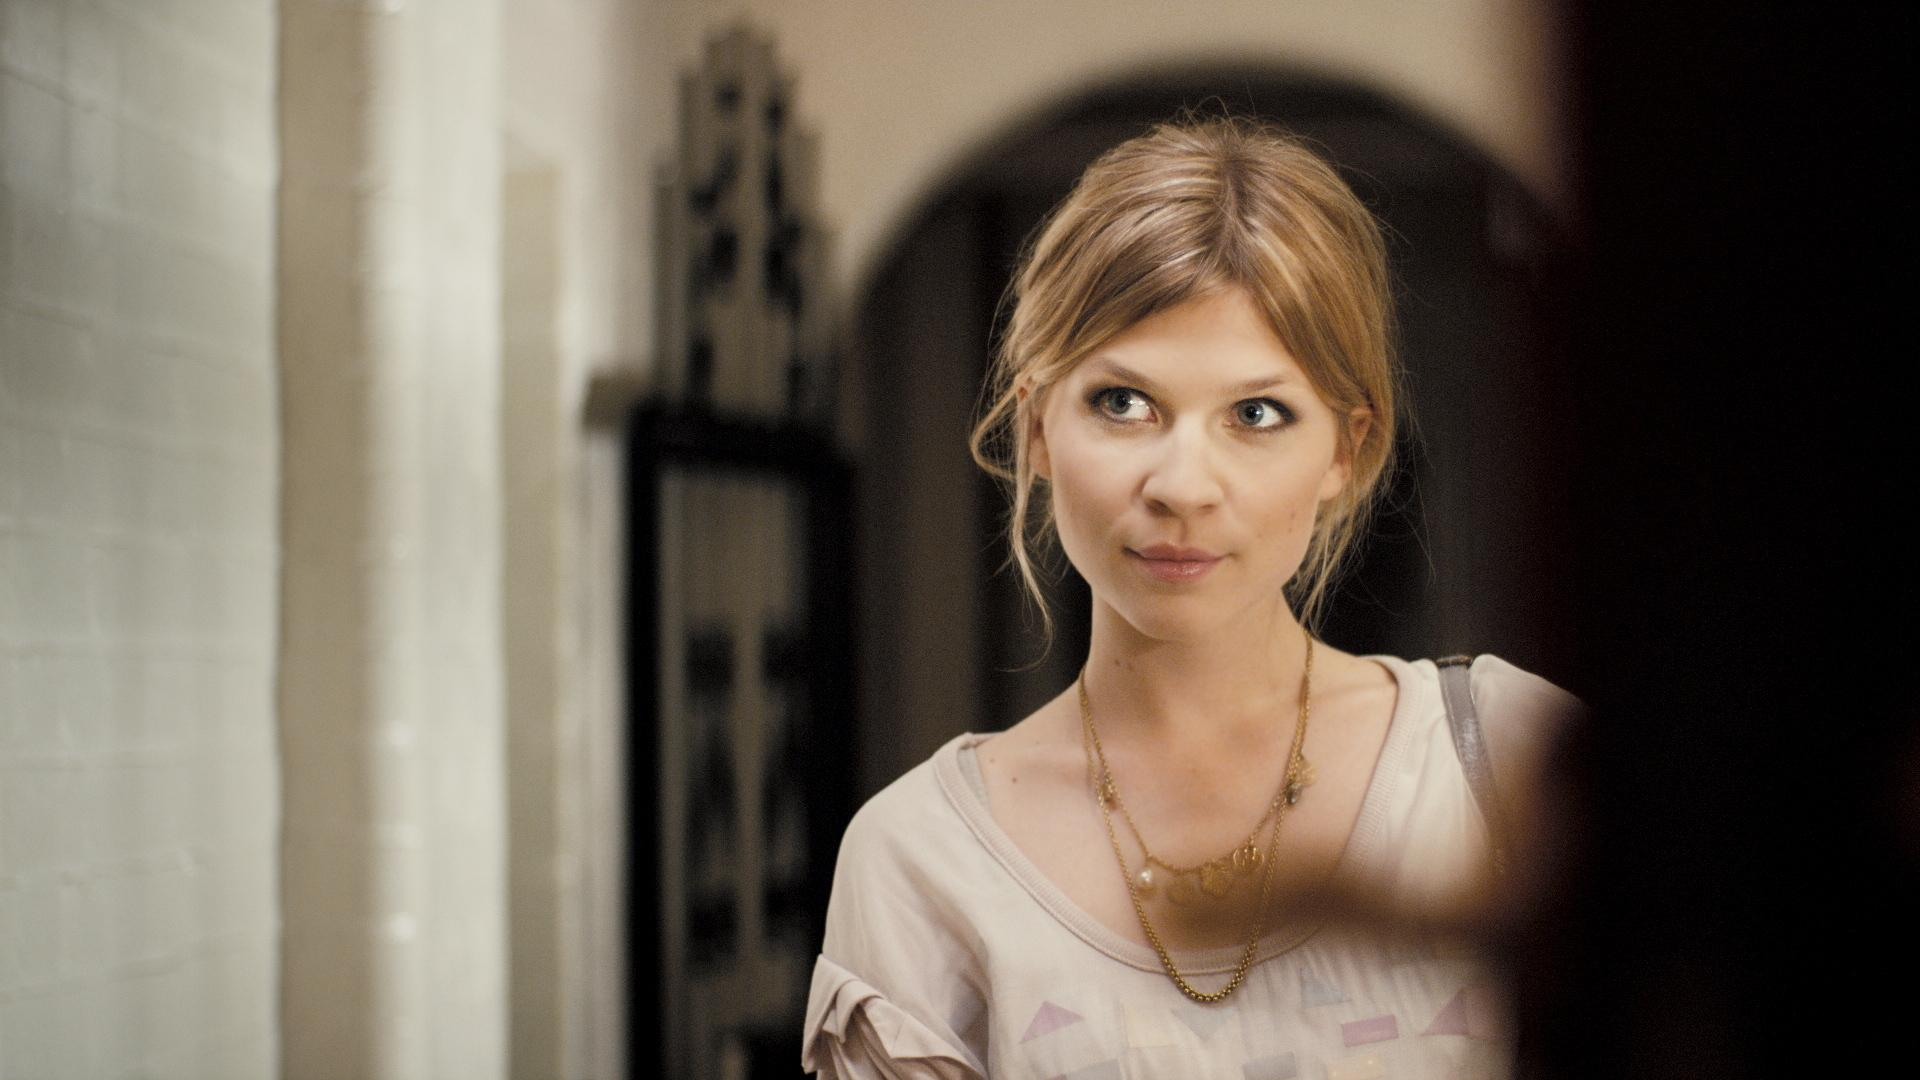 1920x1080 - Clemence Poesy Wallpapers 26